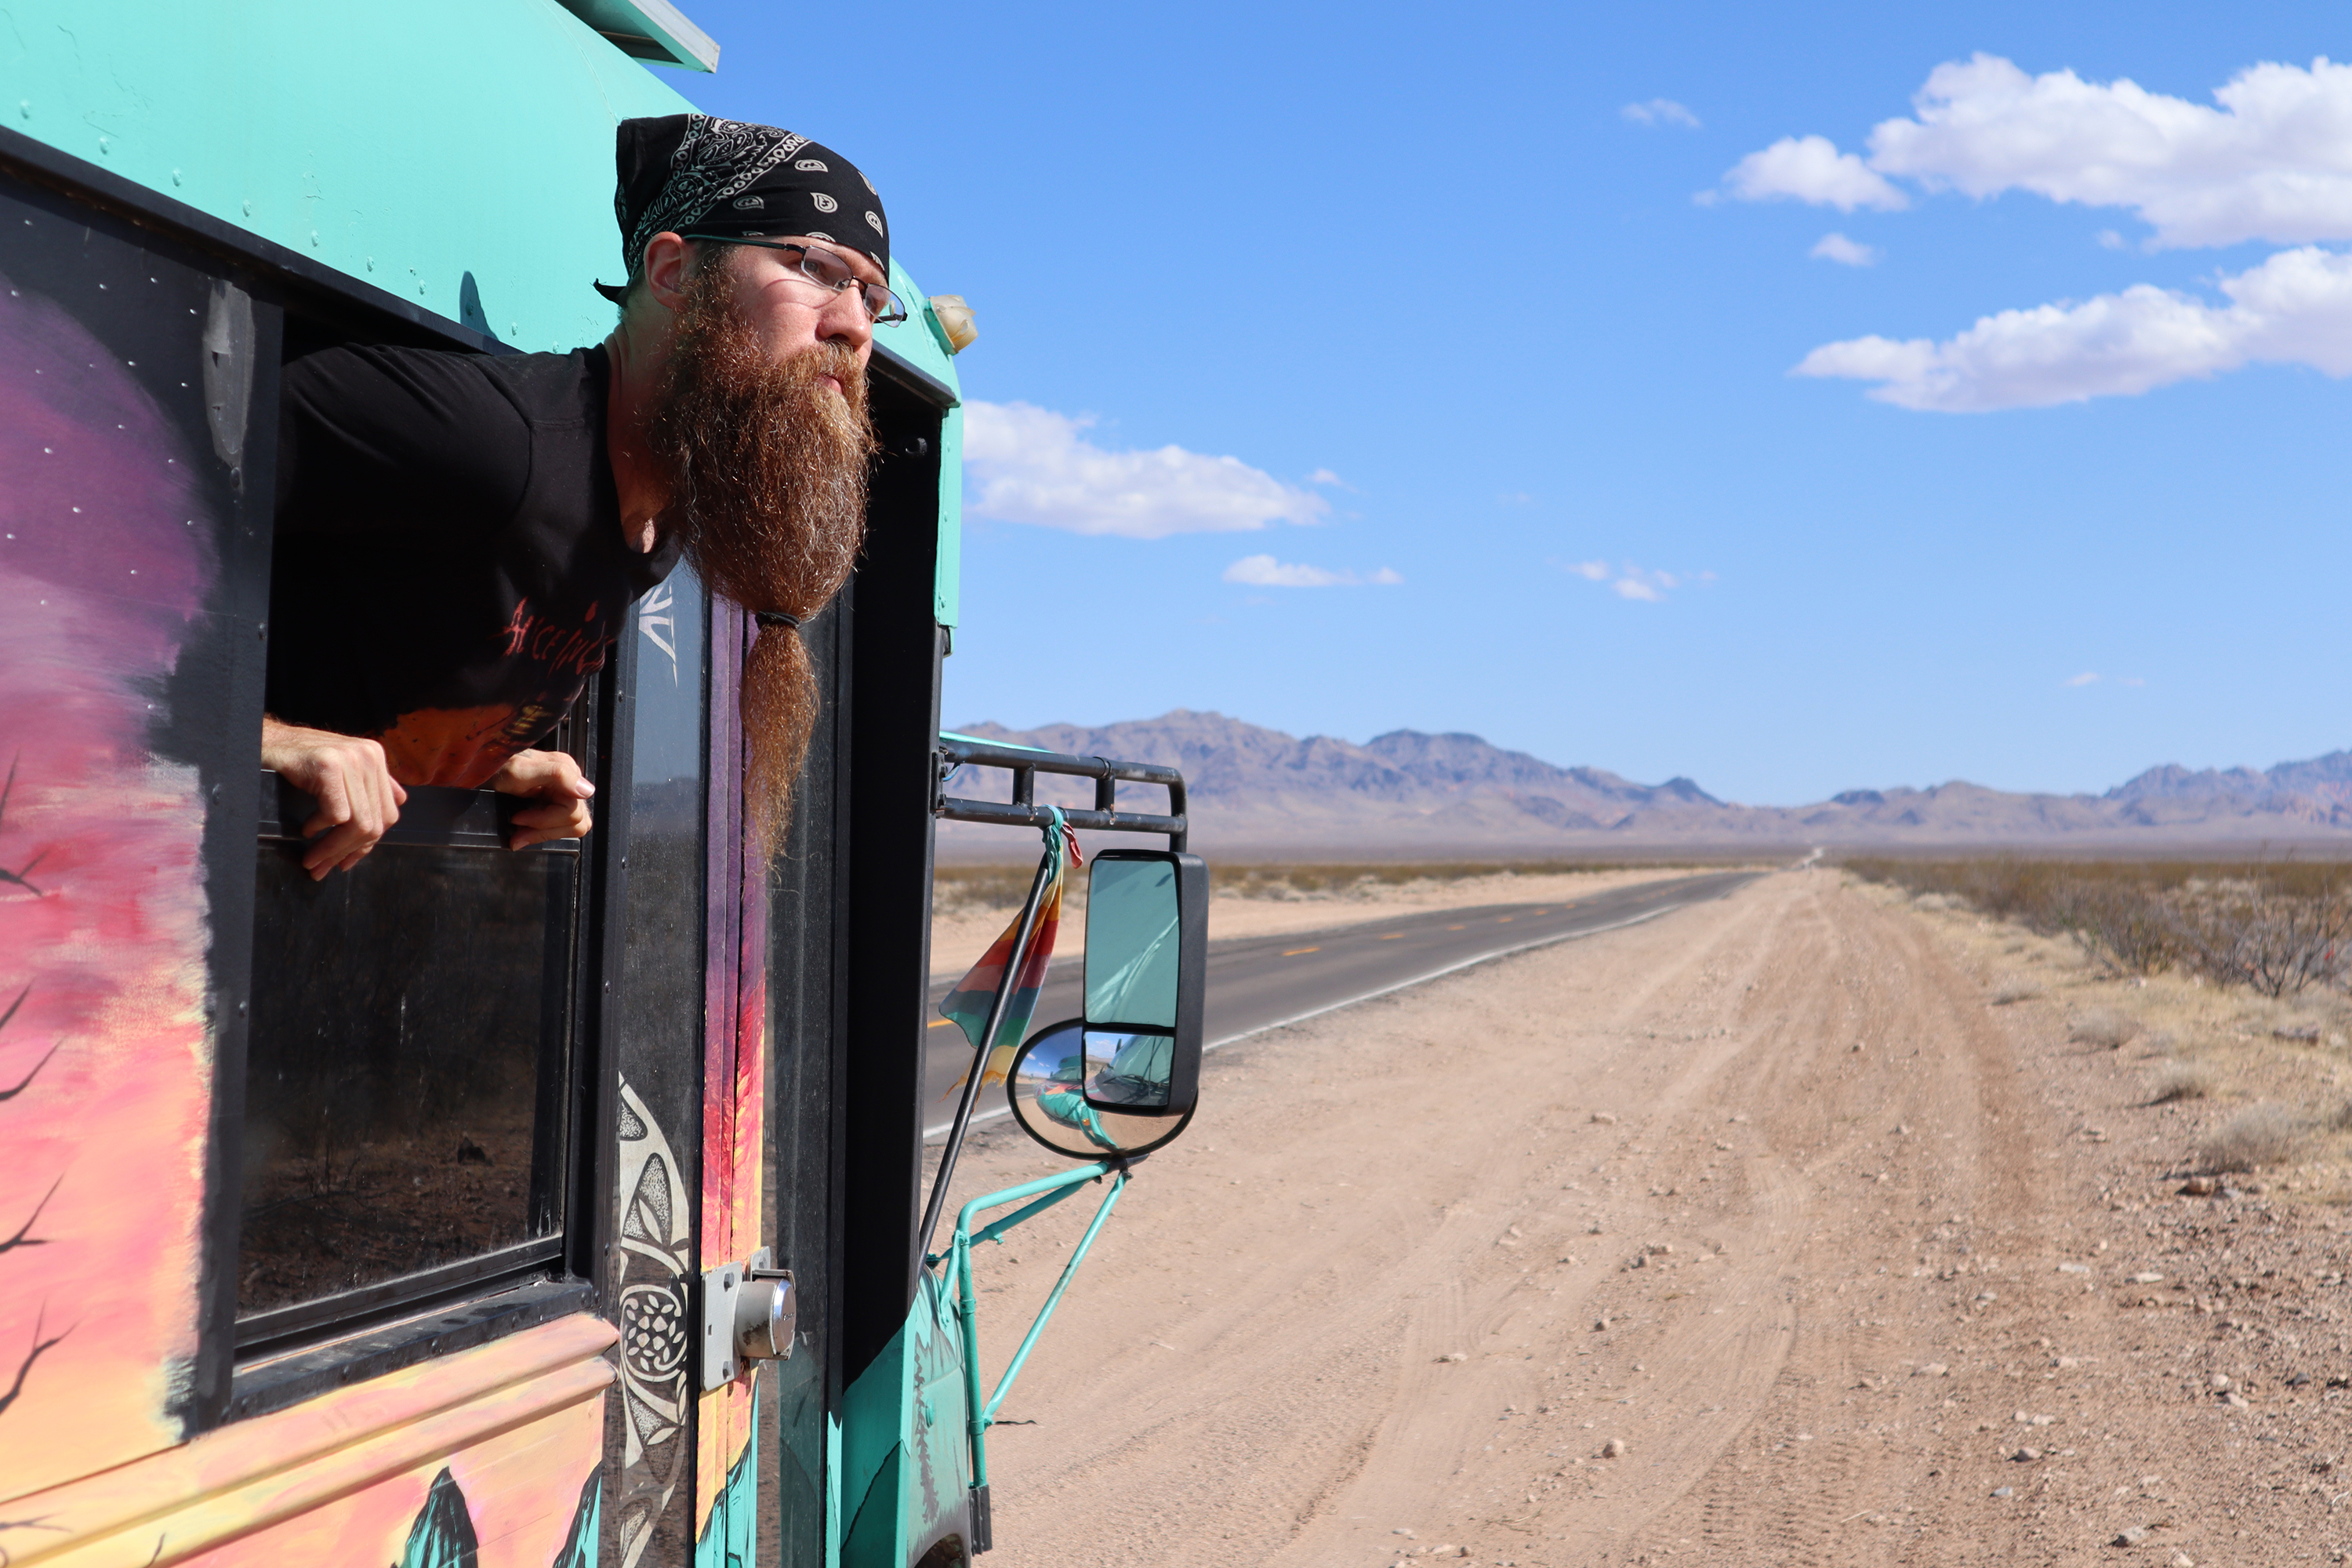 Luke Brokaw looks out the window of the converted school bus that he lives in while working remotely.